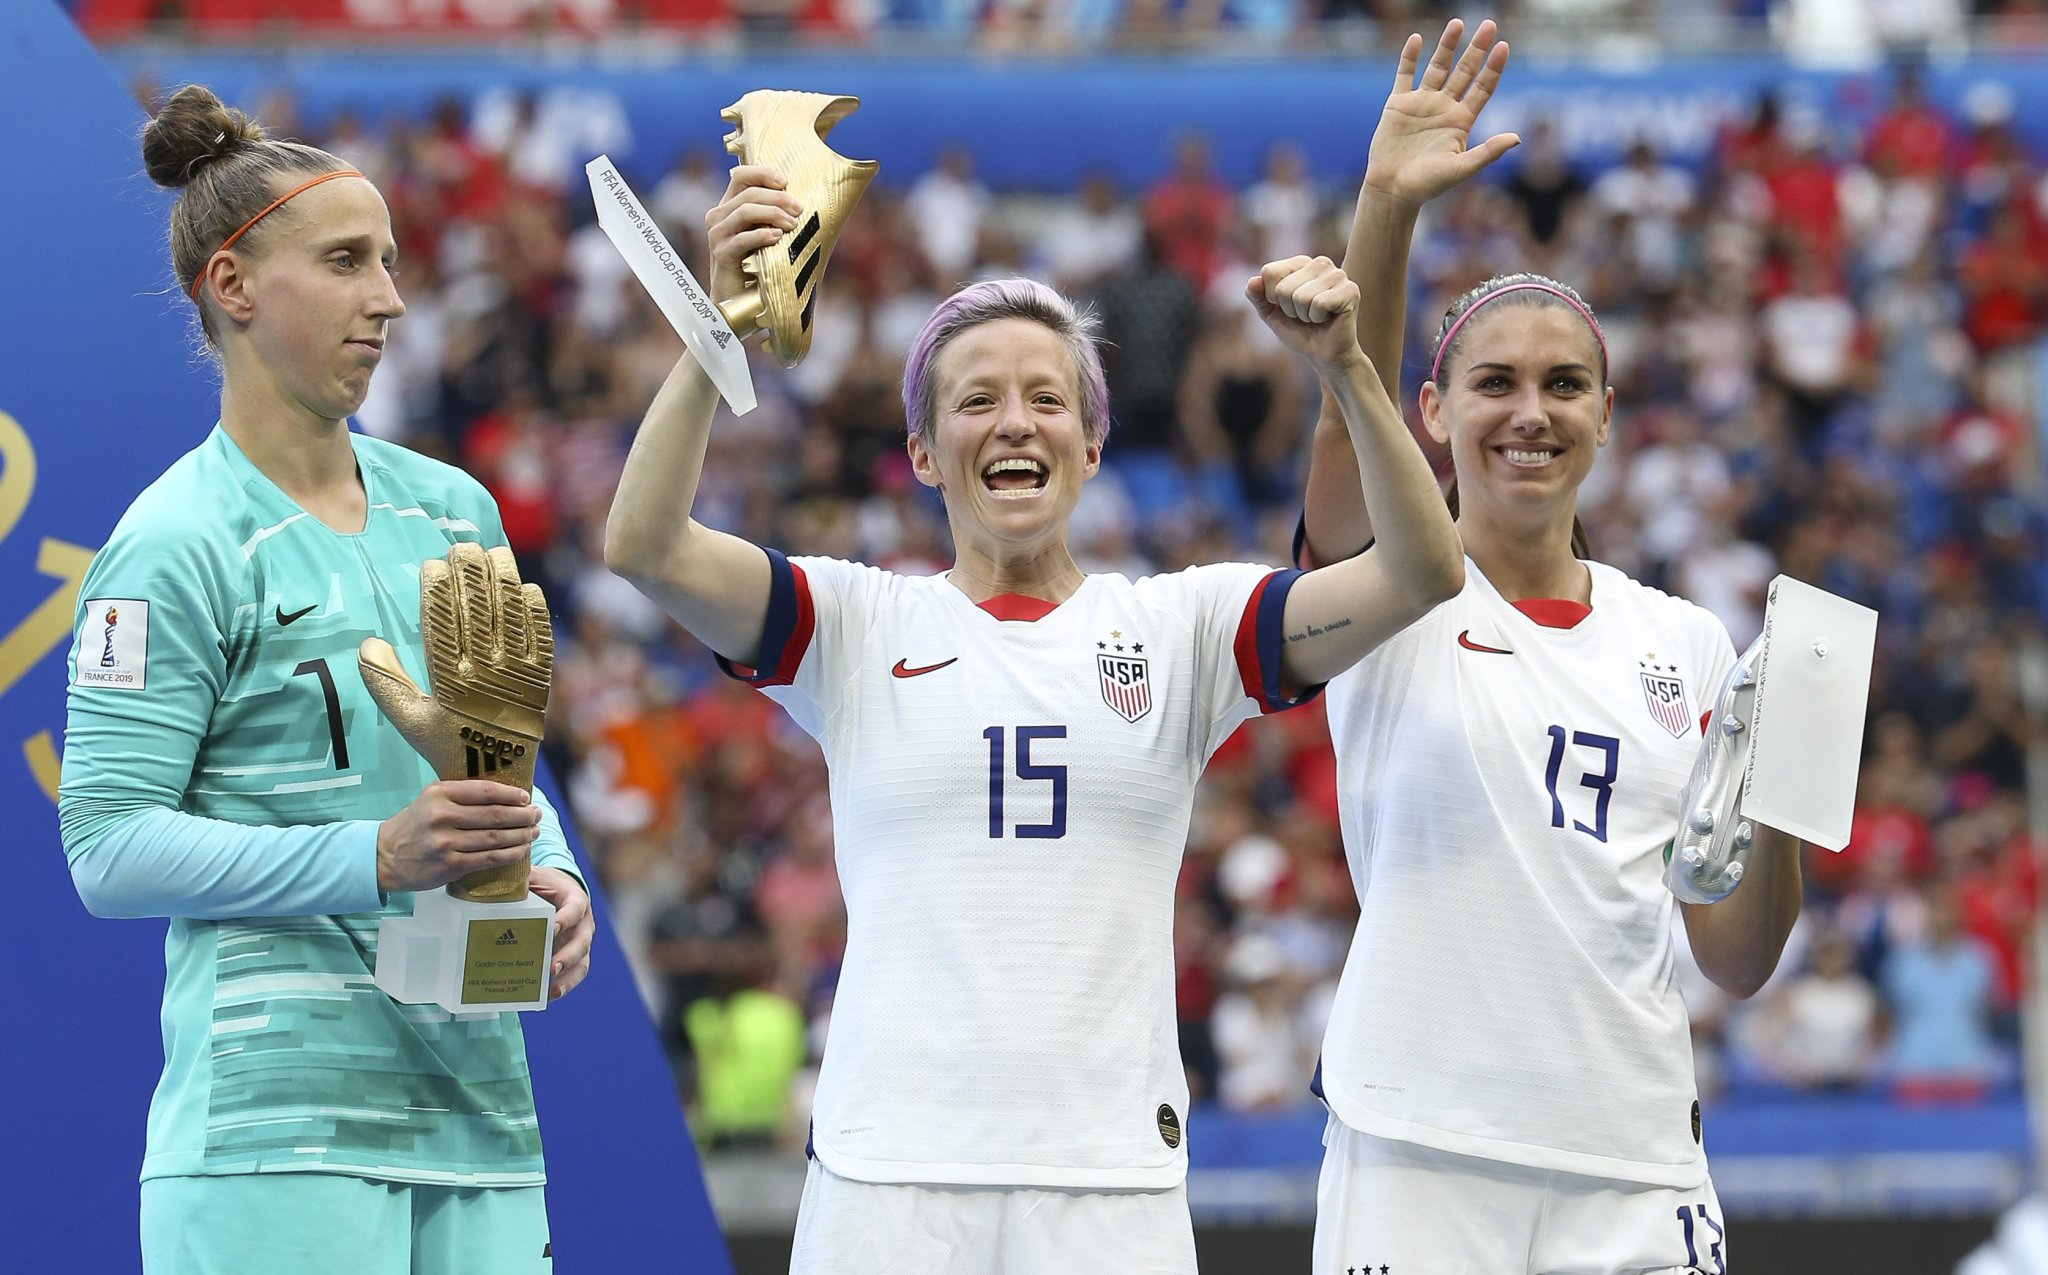 The Sad Story Behind Megan Rapinoe's Birthday Shoutout To Her Brother Following The U.S. World Cup Victory - BroBible